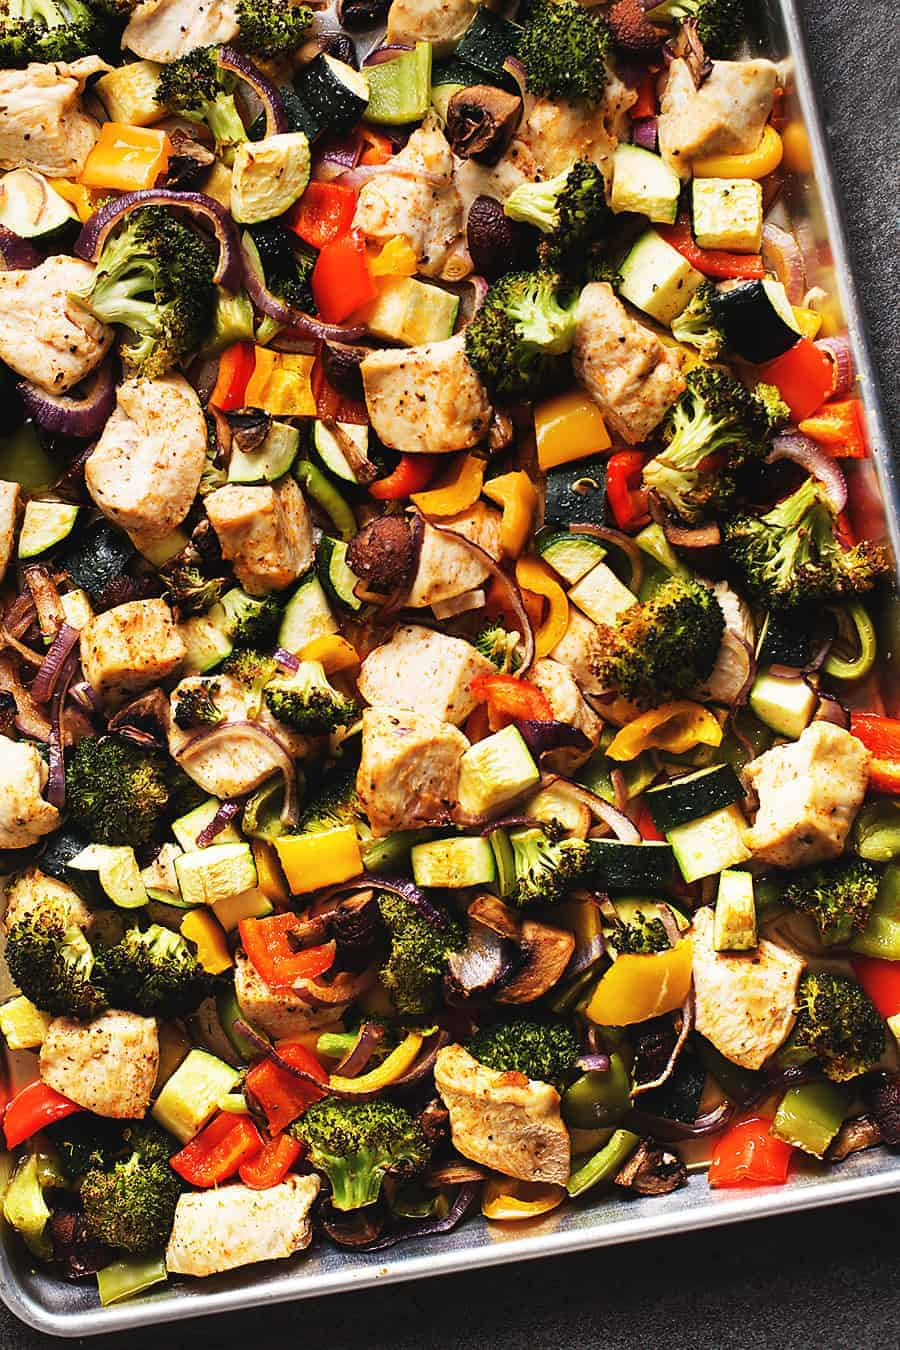 a sheet pan full of chicken and vegetables. Broccoli, bell pepper, onion, zucchini, and mushrooms